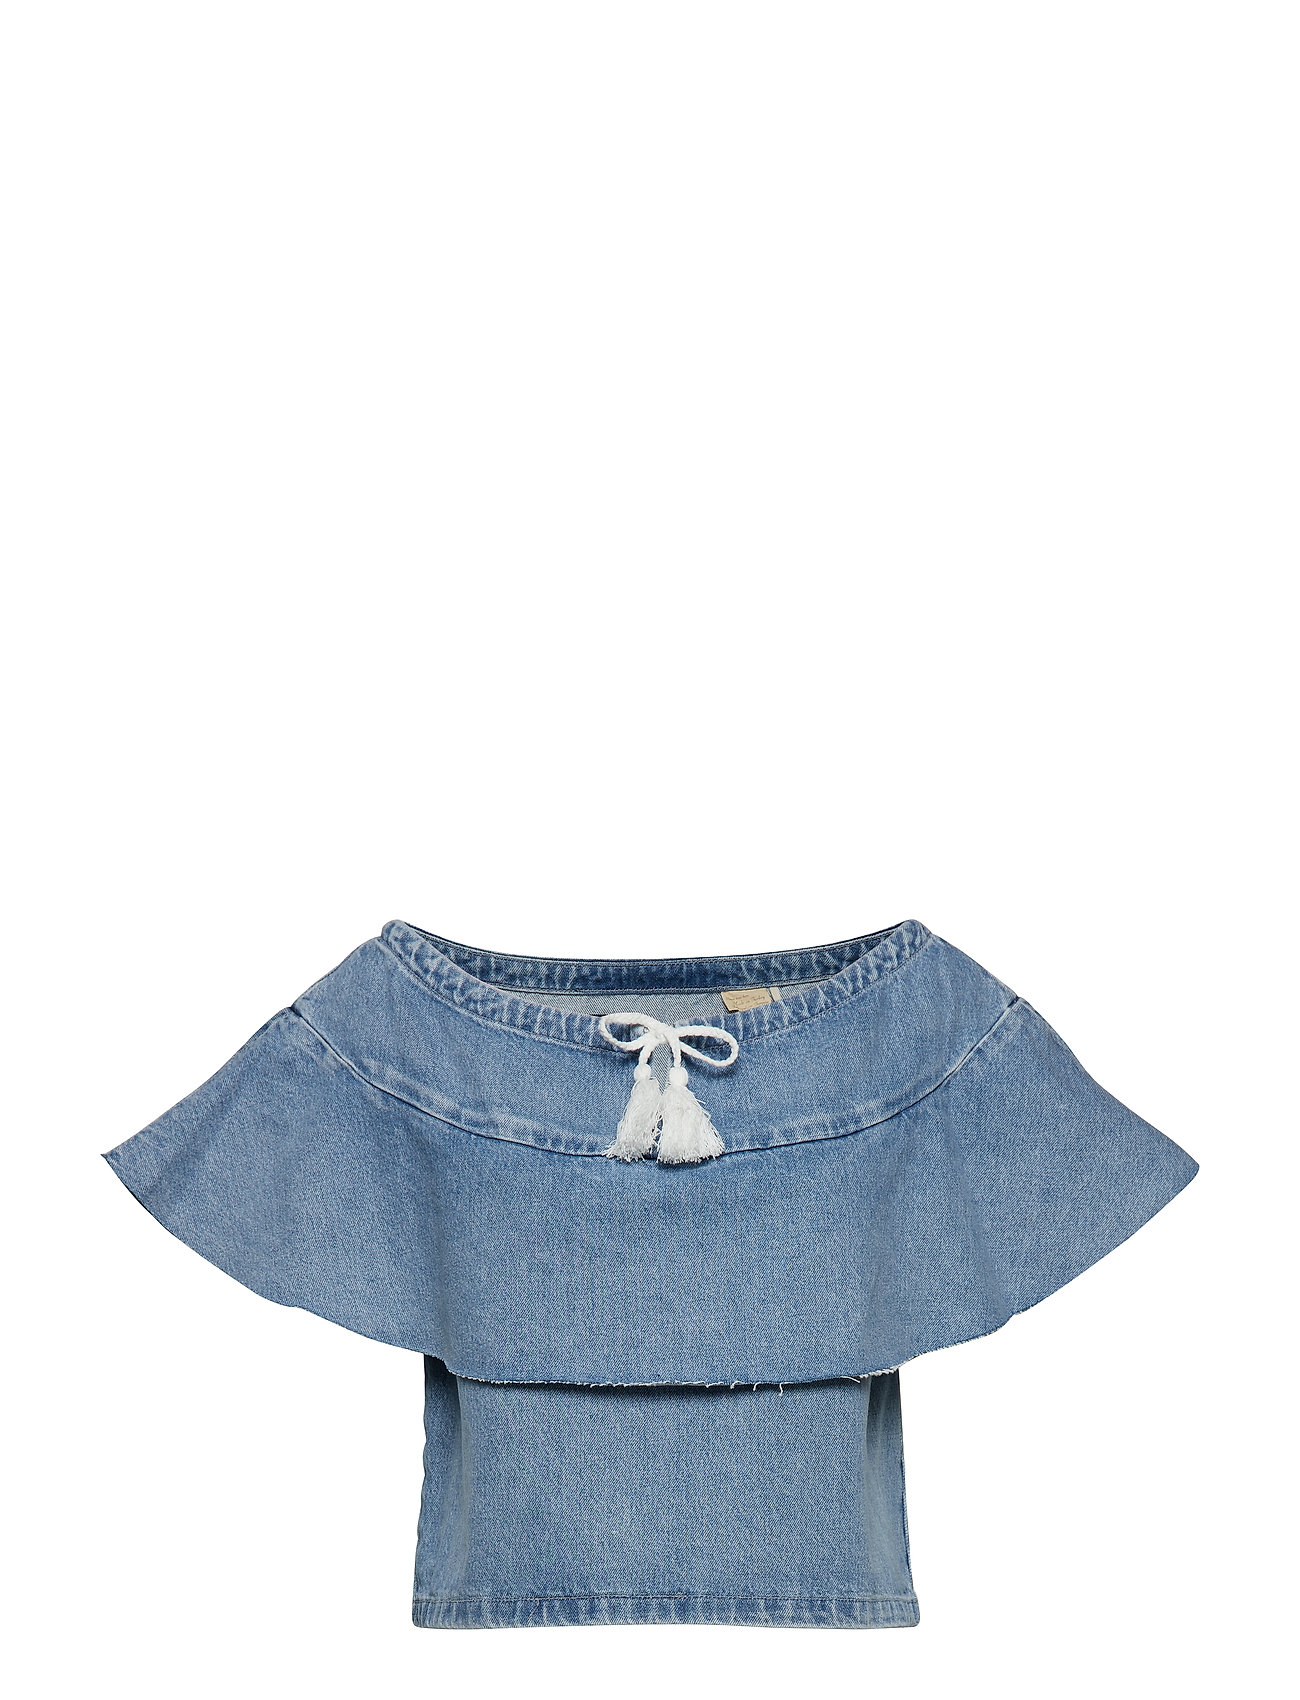 Levi's Made & Crafted LMC DENIM RUFFLE TOP LMC SILVE - BLUES